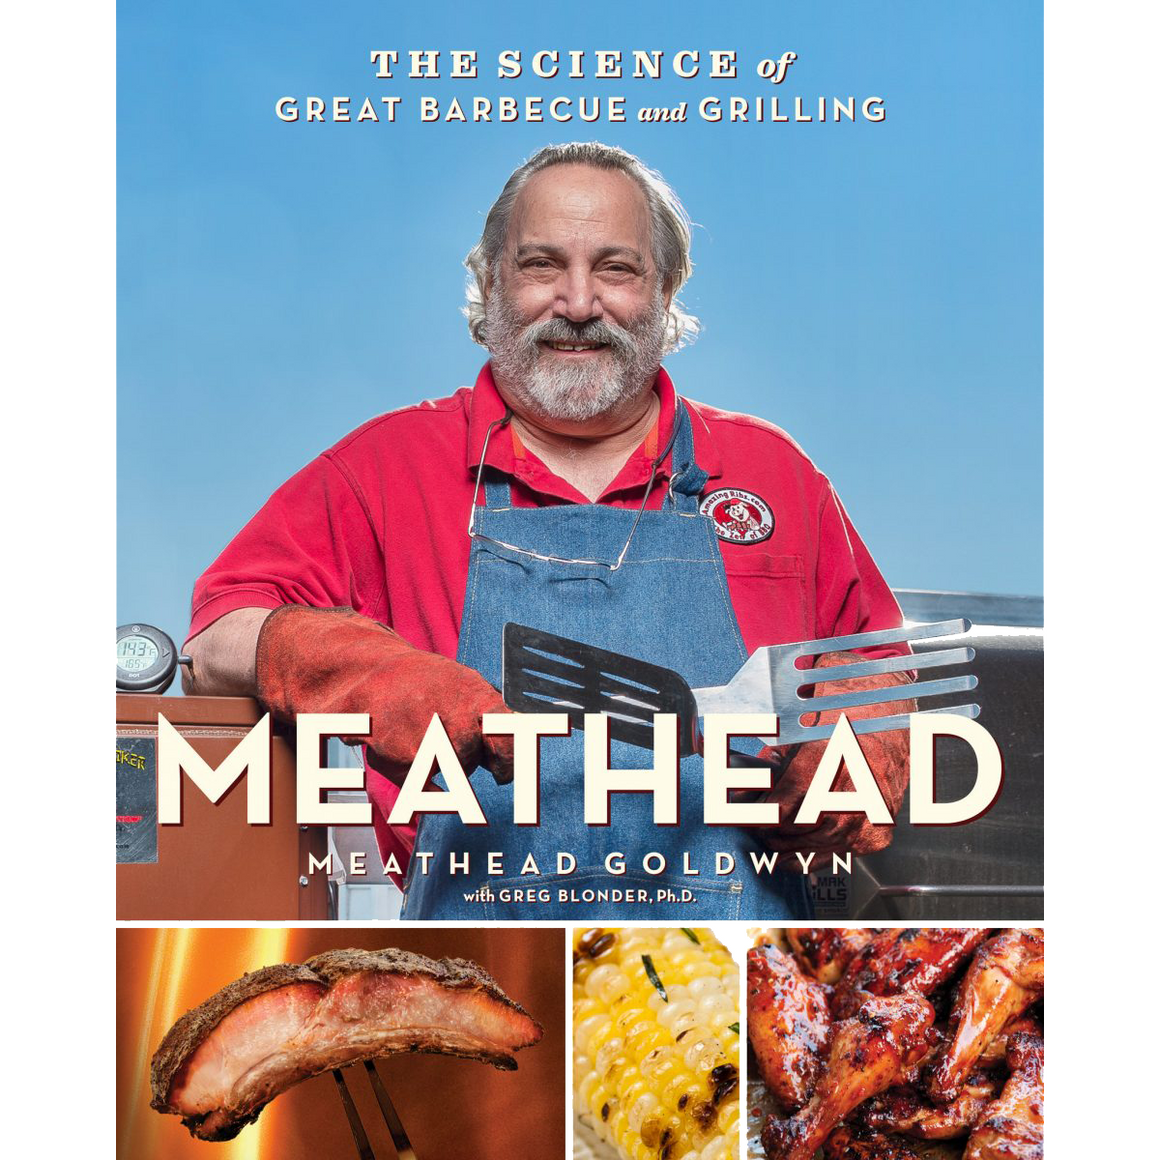 Meathead: The Science of Great Barbecue and Grilling by Meathead Goldwyn with Greg Blonder, Ph.D.